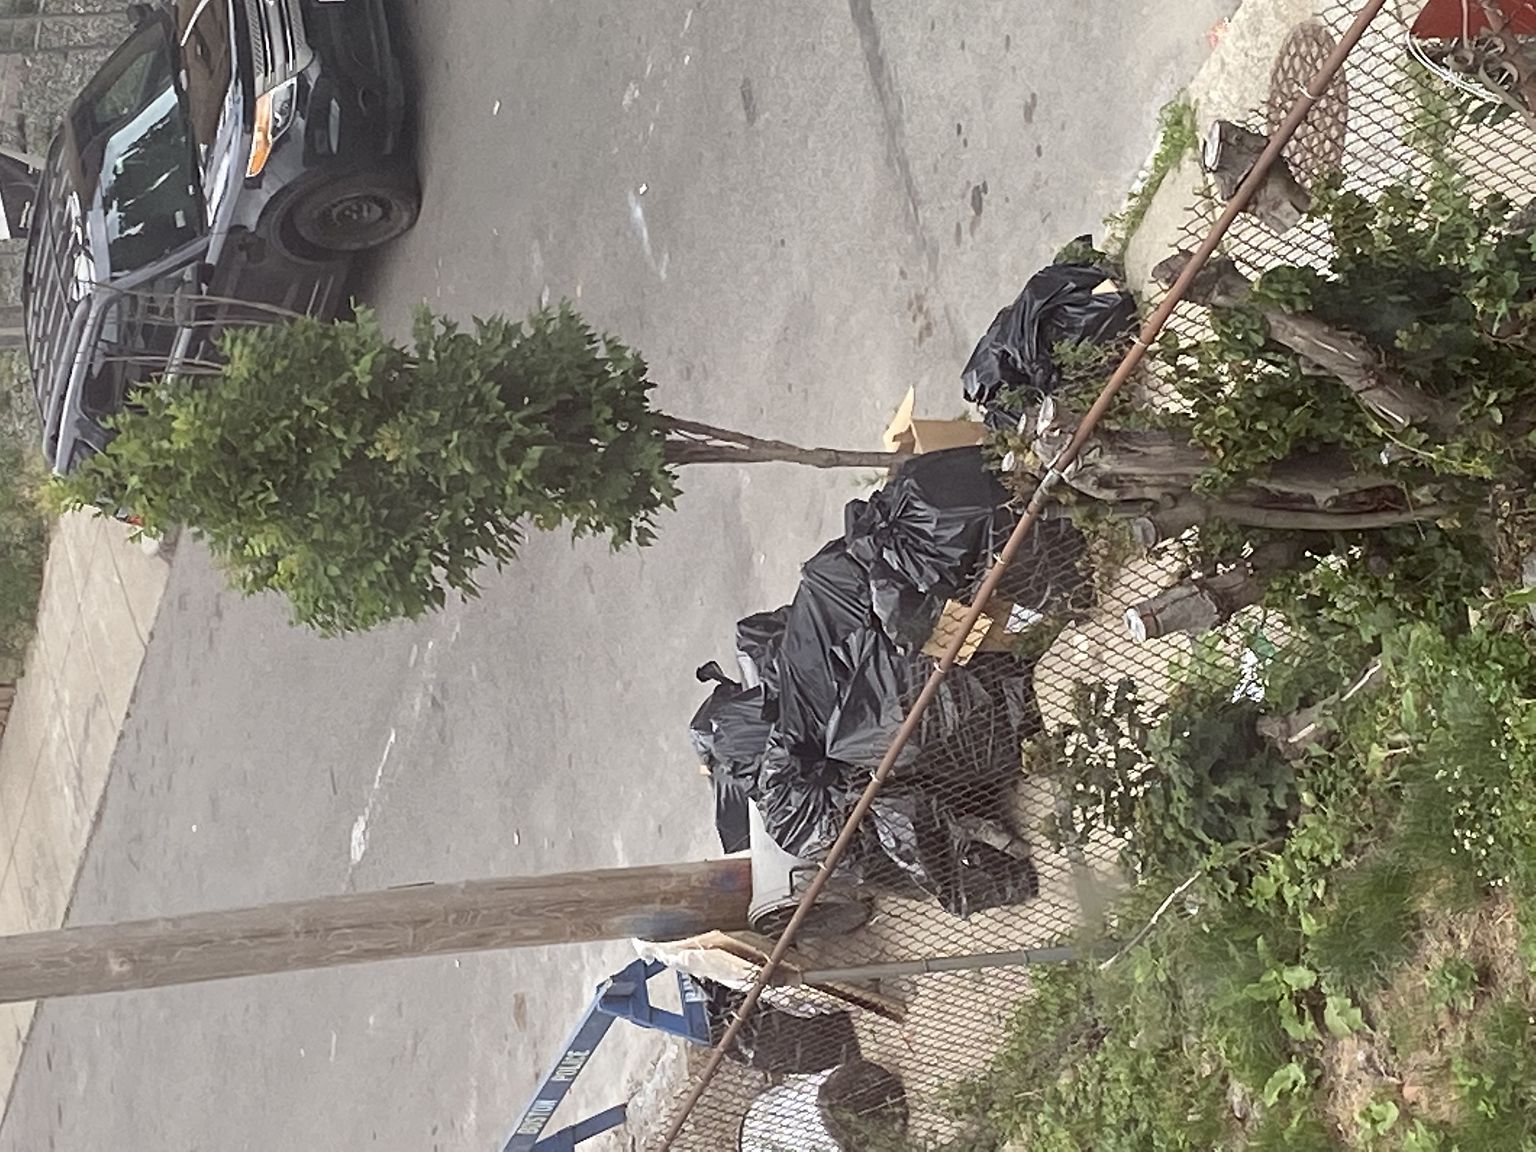 There trash is dumped in front of another's property after pickup of trash. Not the first time.